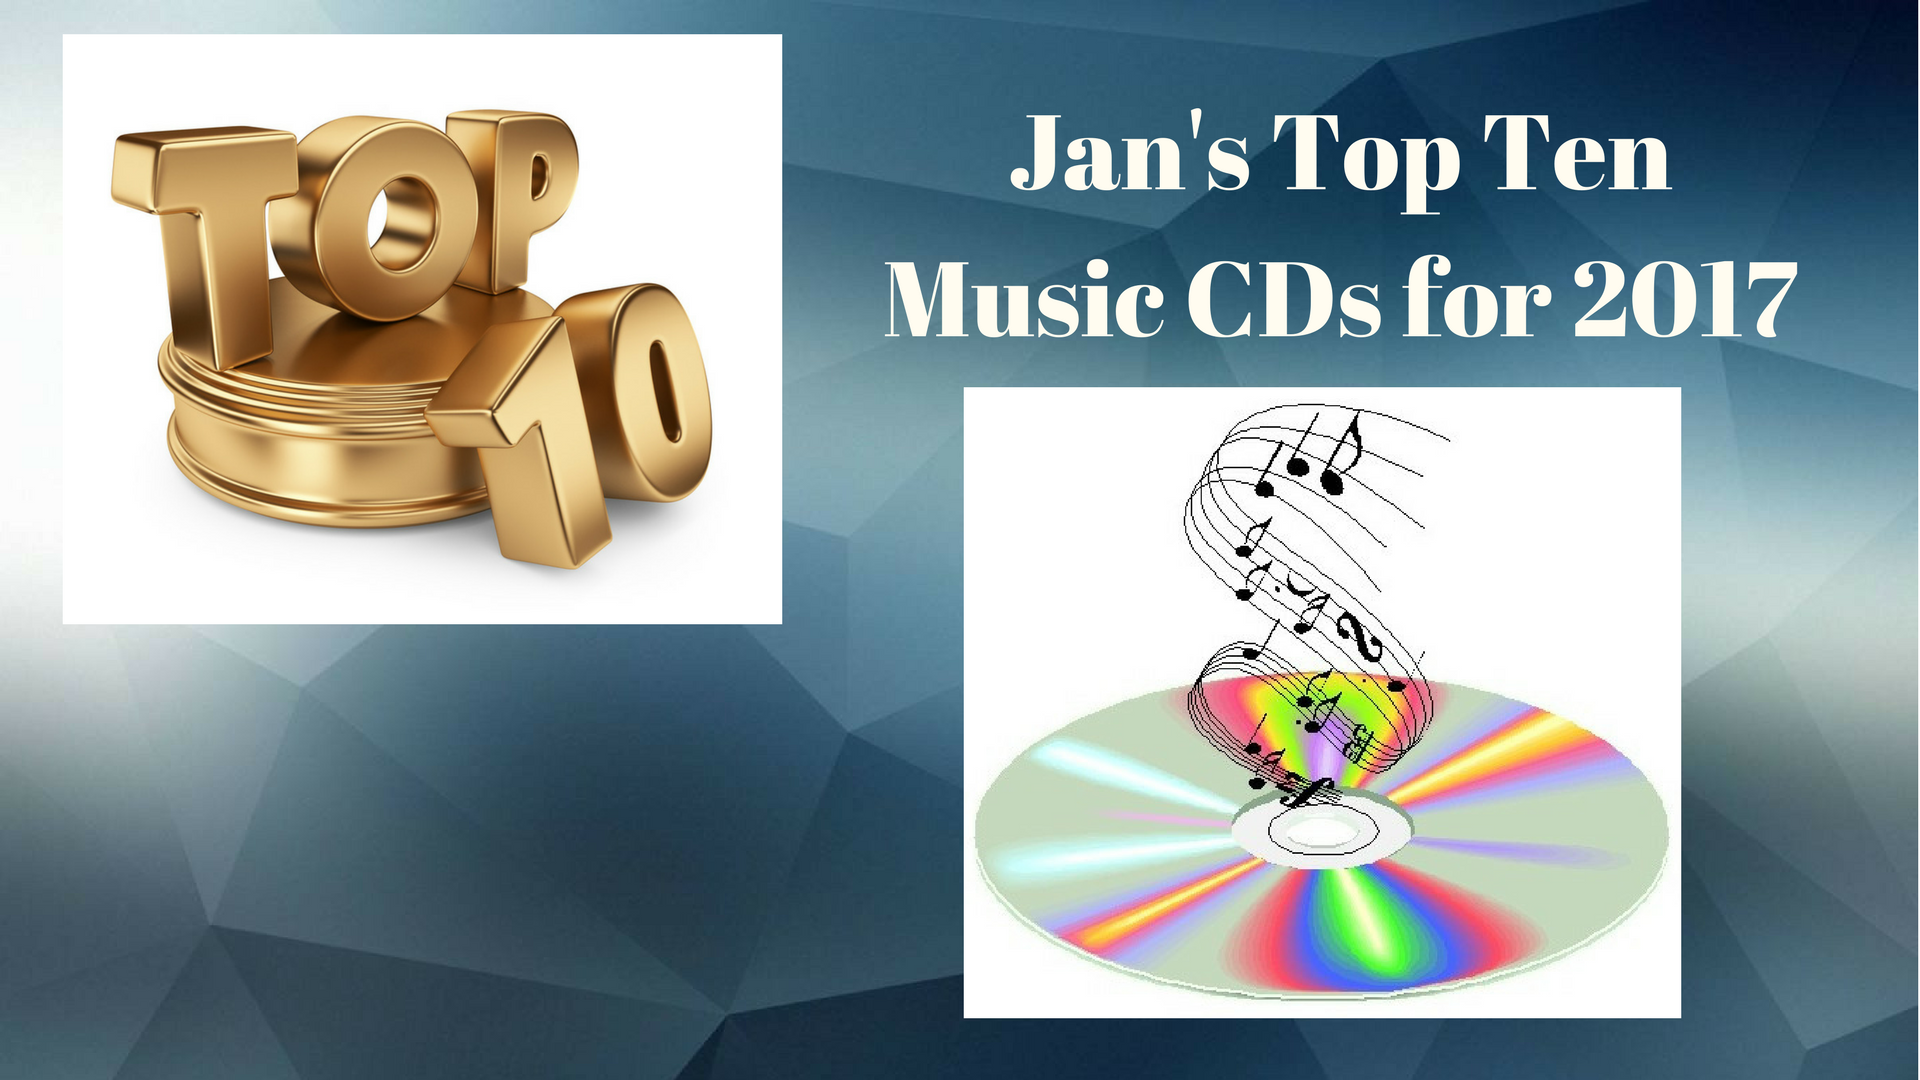 Jan's Top Ten NewMusic CDs for 2017